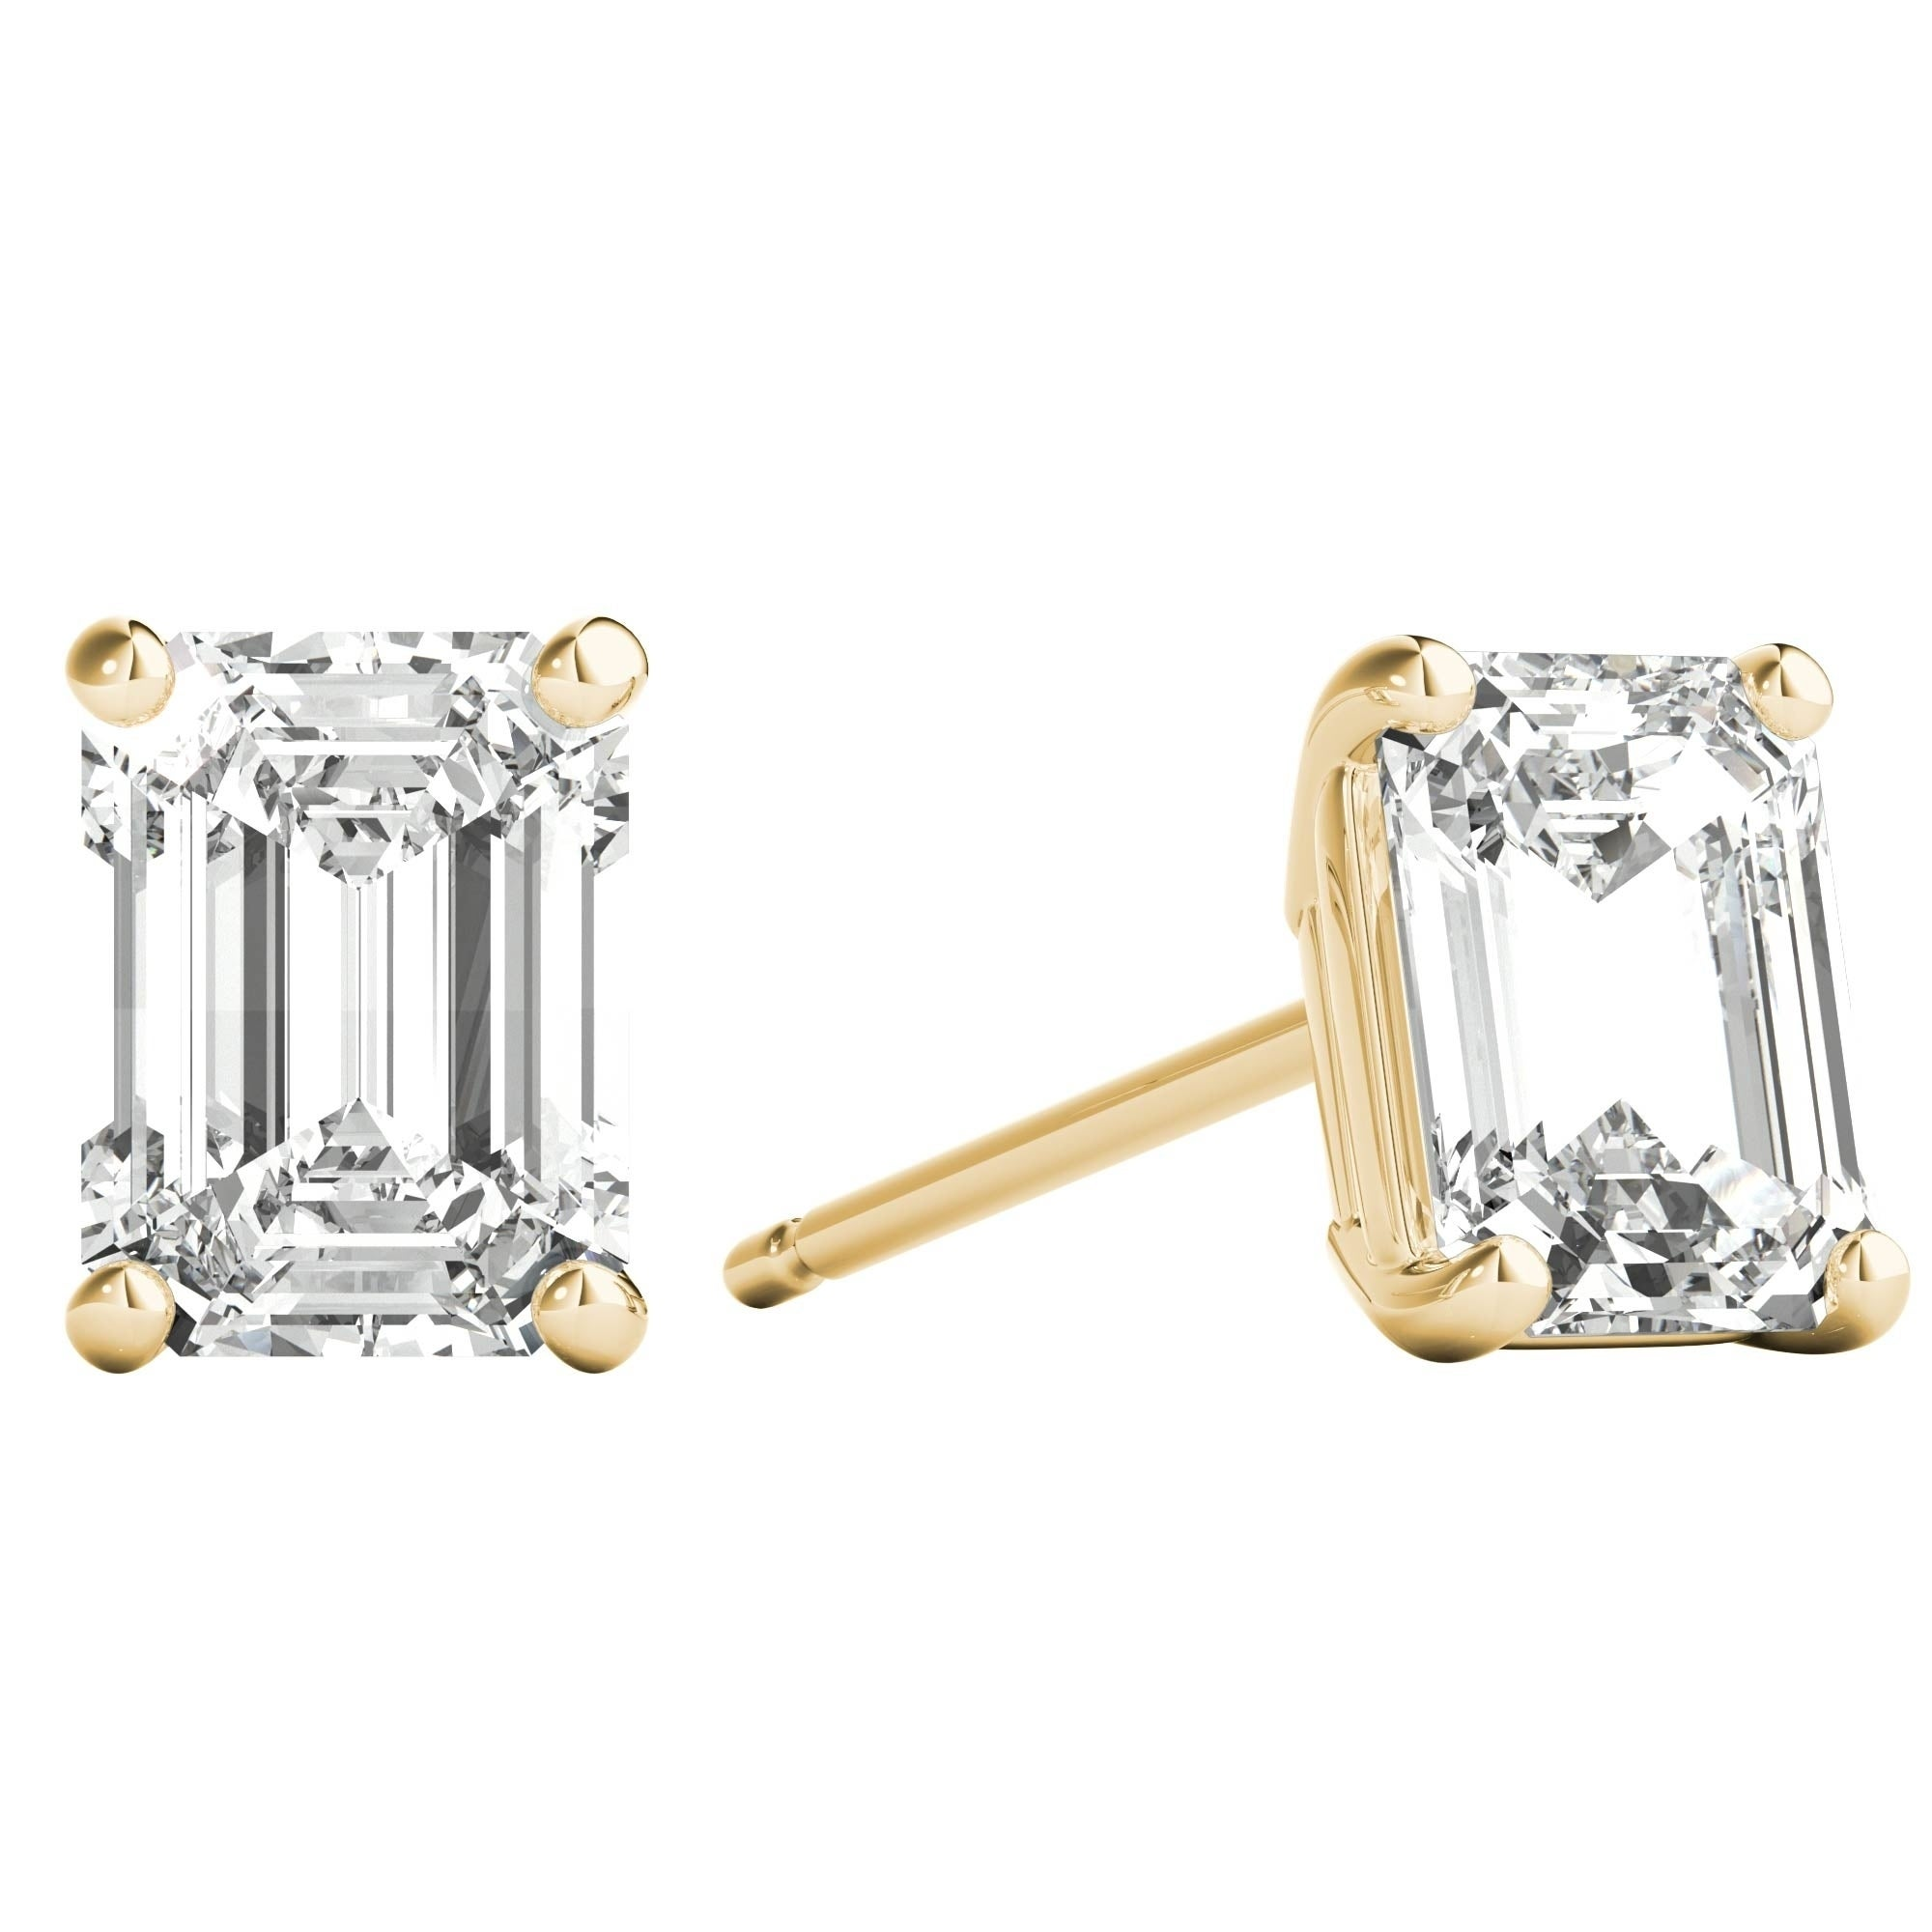 ecb1c6afd Shop Seraphina 14k Gold 1ct TDW Emerald Cut Diamond Solitaire Stud Earrings  - Free Shipping Today - Overstock - 21220468